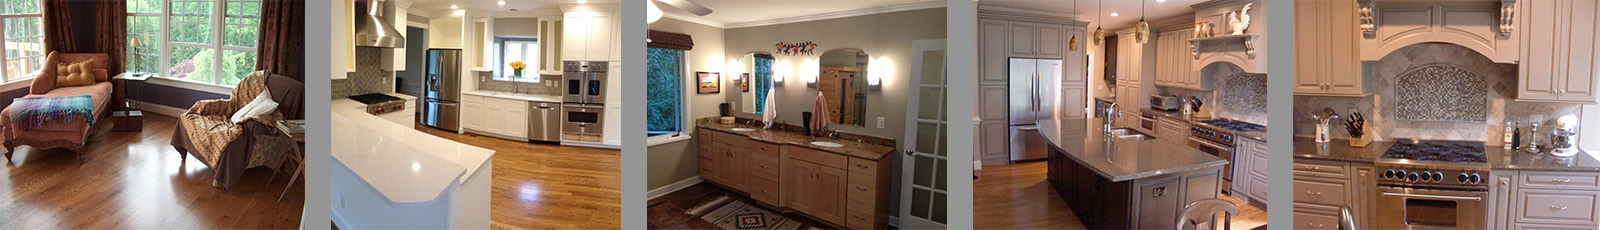 Residential Construction & Remodeling